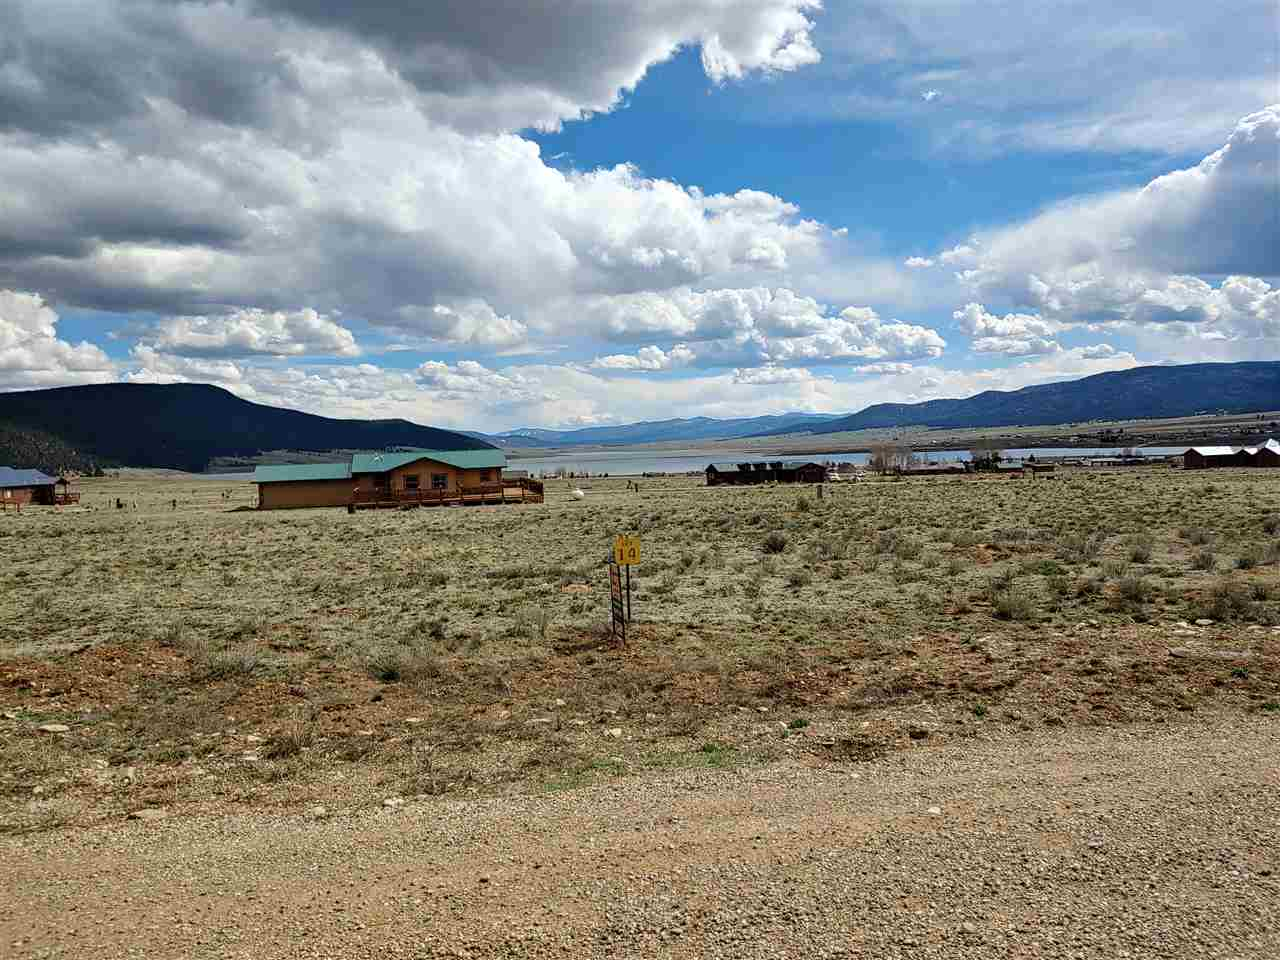 Lot 14 Blk 2 Bear Mountain Estates, Eagle Nest, NM 87718